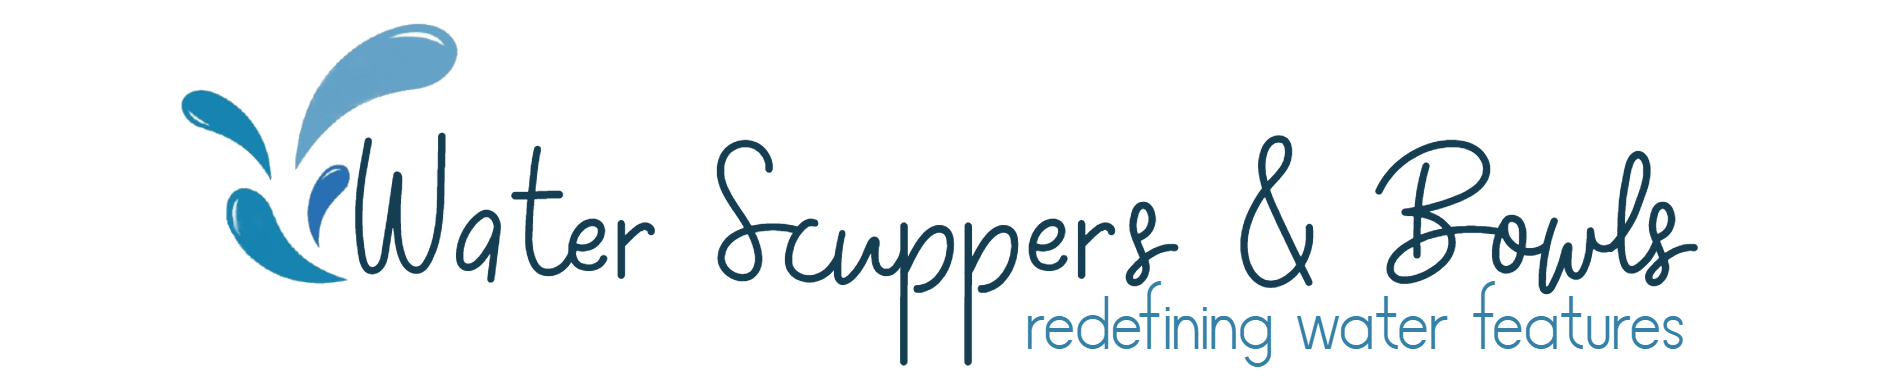 water scuppers and bowls logo